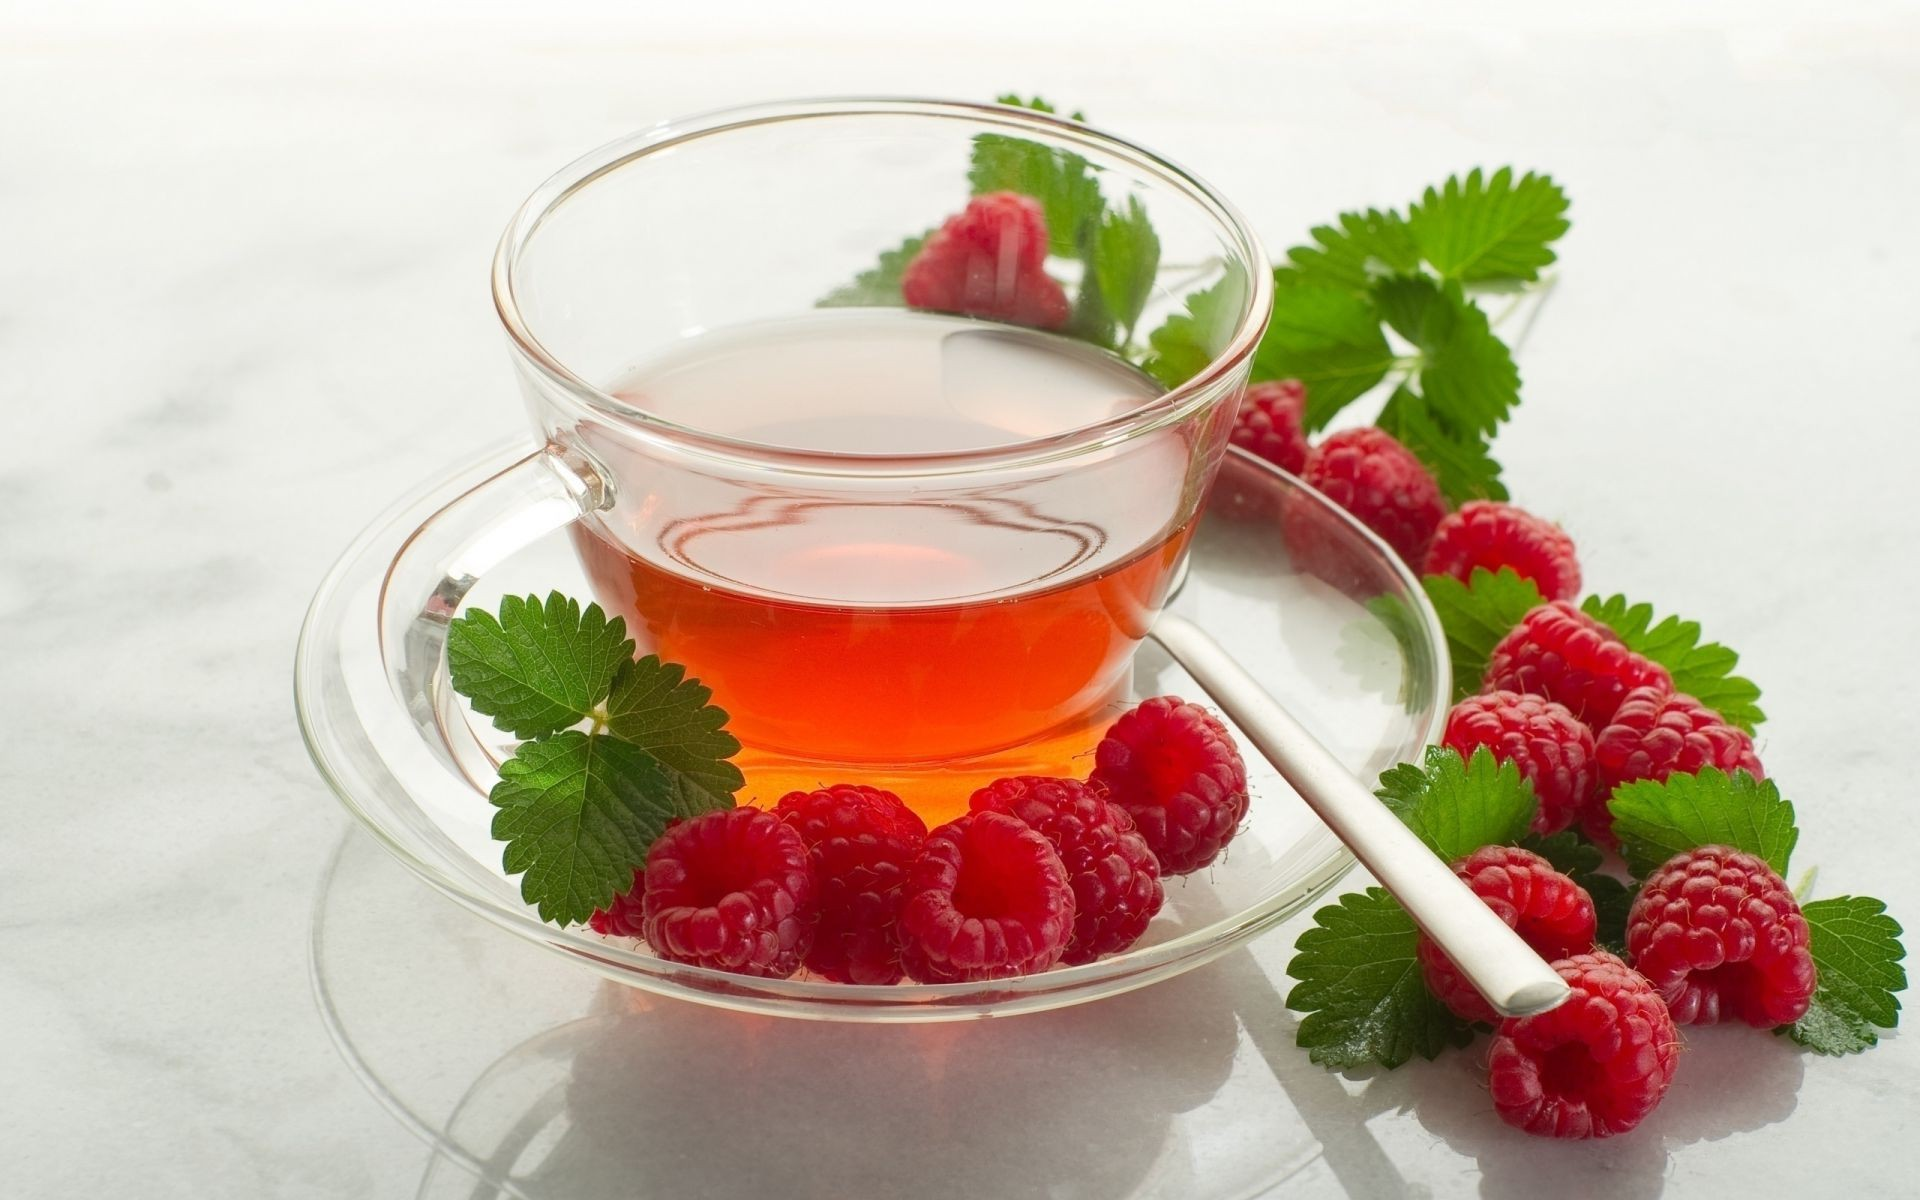 tea berry mint fruit sweet strawberry healthy refreshment leaf food breakfast juicy health delicious bowl freshness peppermint tasty diet raspberry